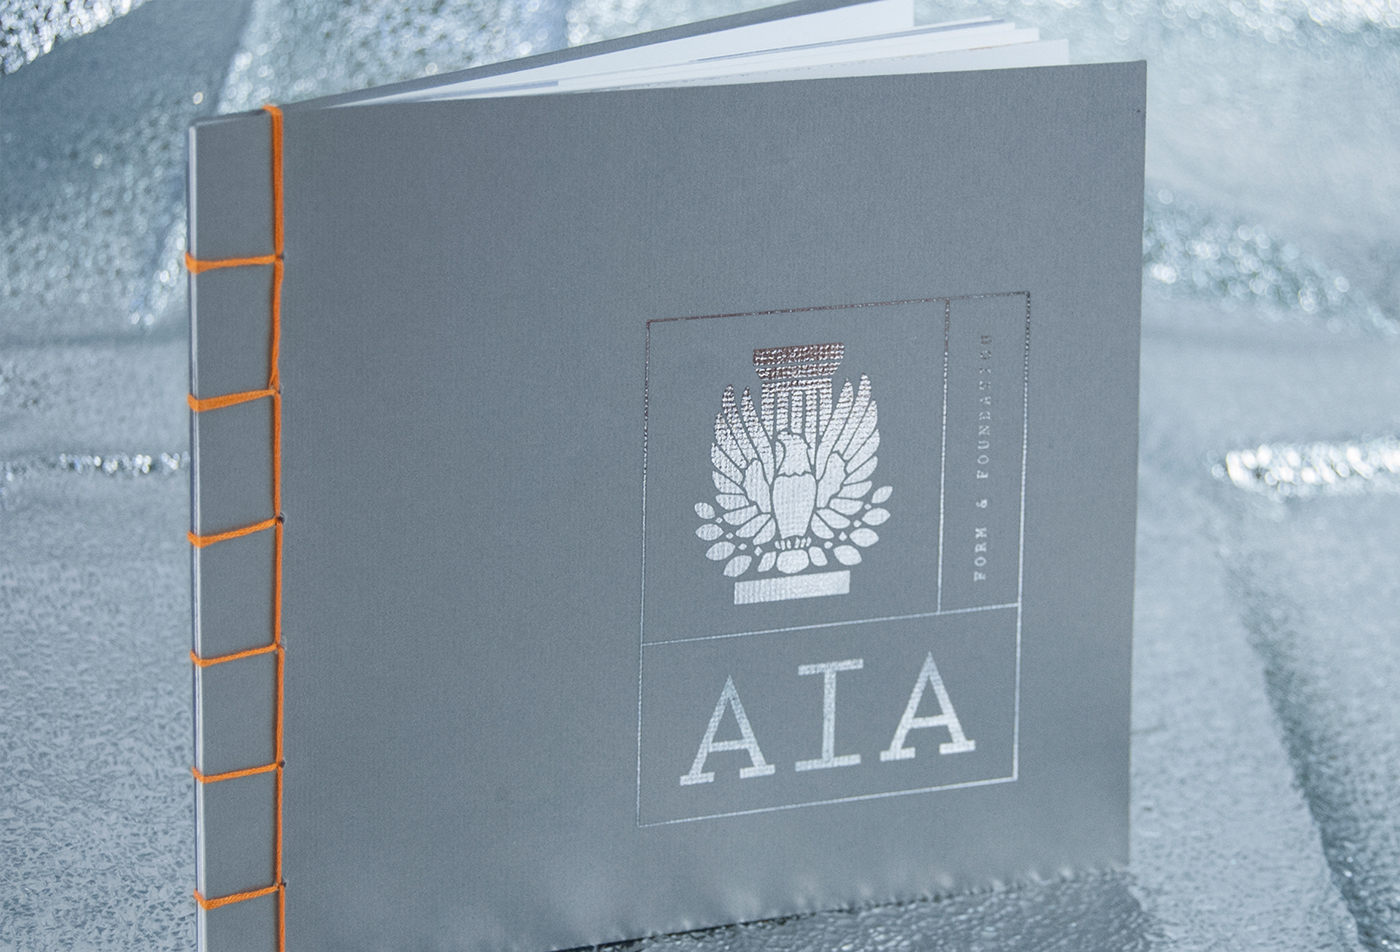 AIA | Form & Foundation on Behance